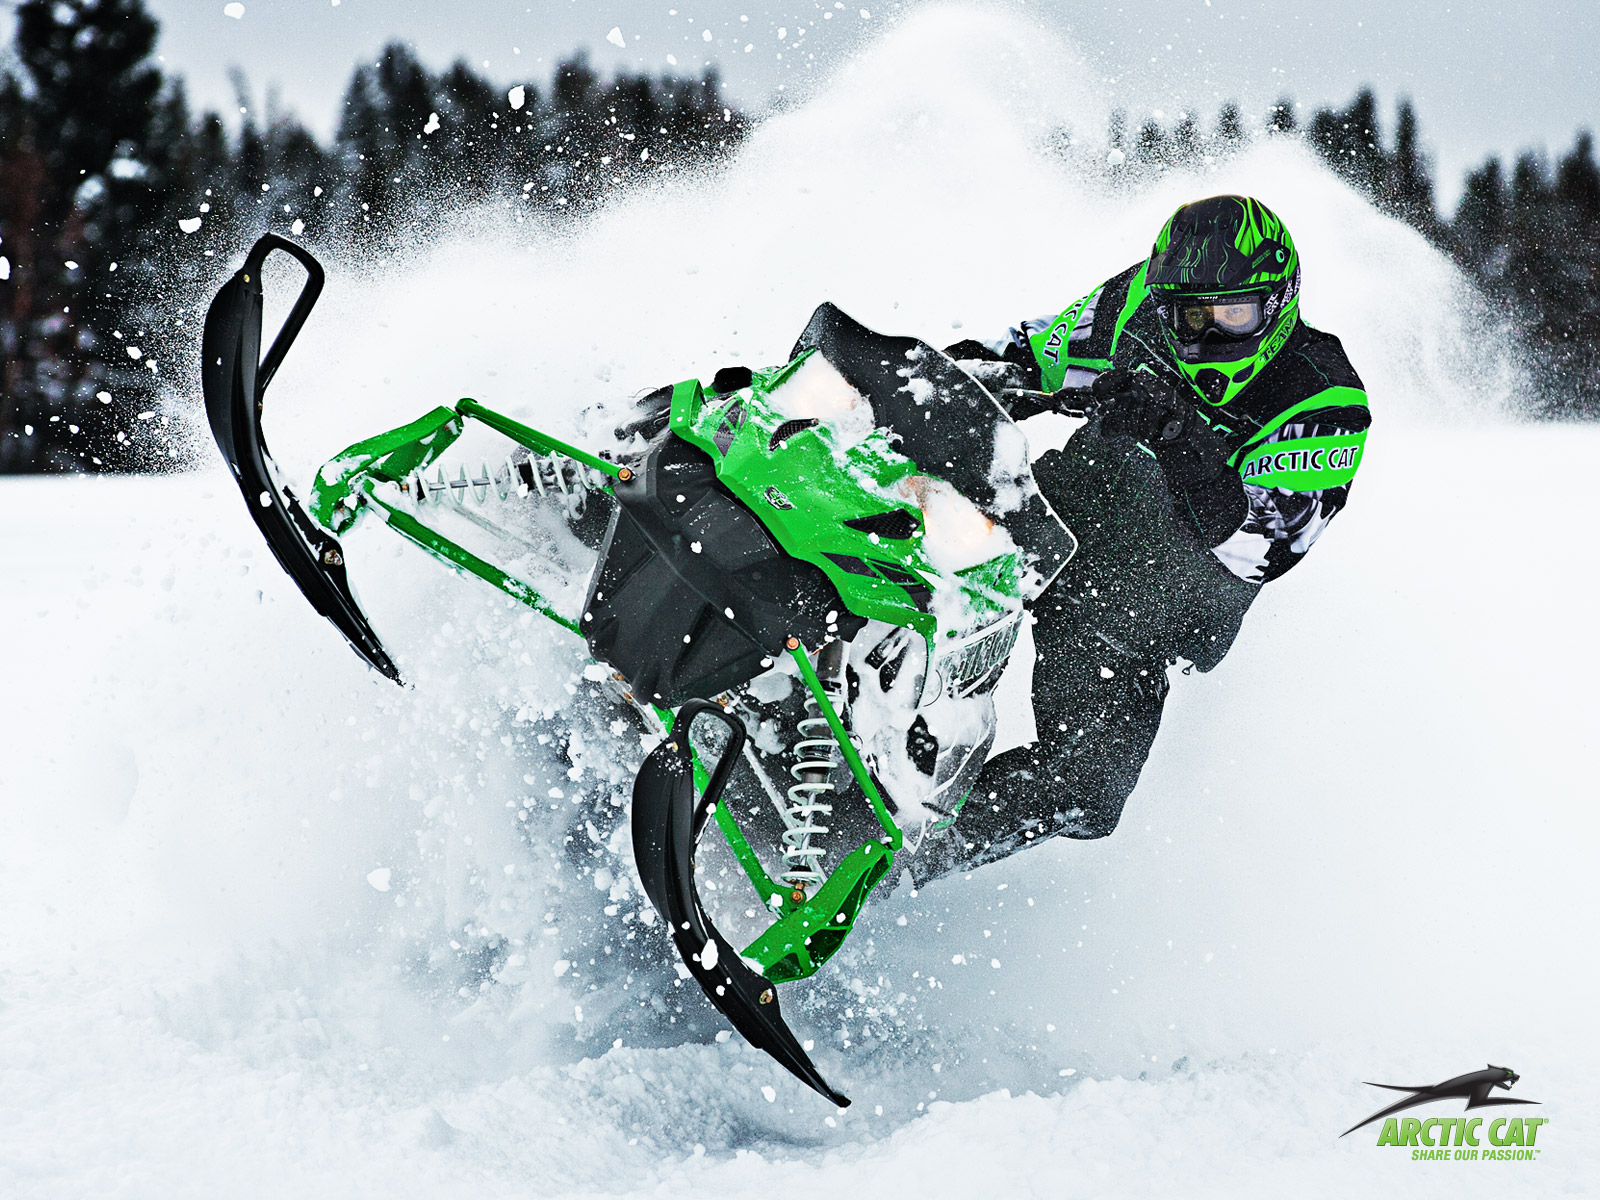 GGB Mountain can's for Arctic cat's